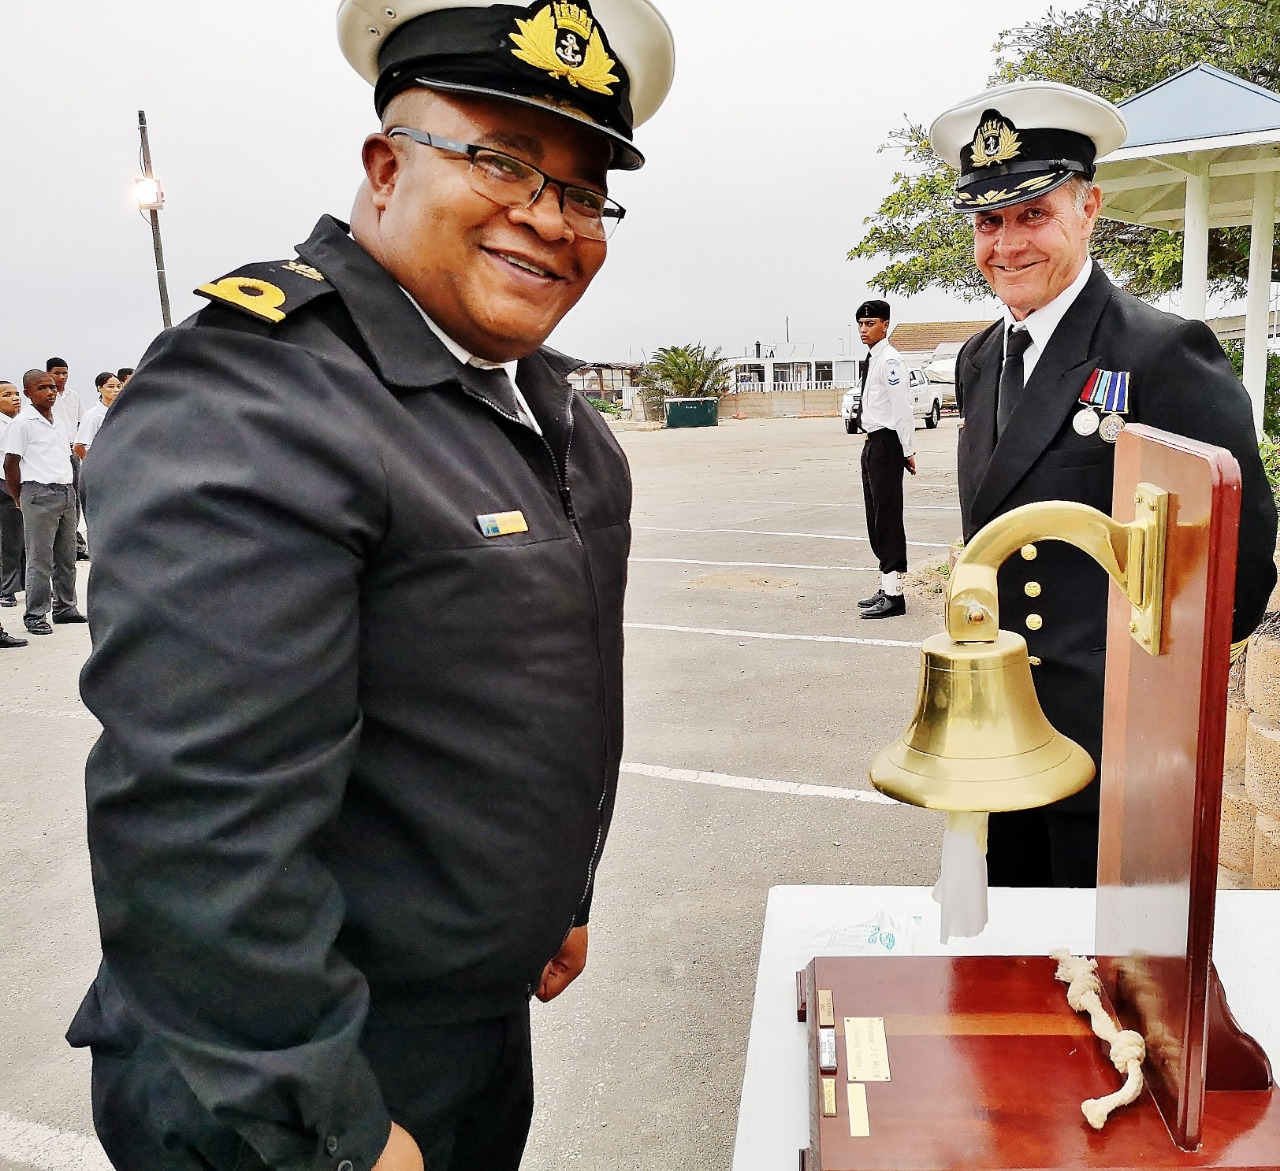 TS Outeniqua Sea Cadet Training Ship Awarded The Professor